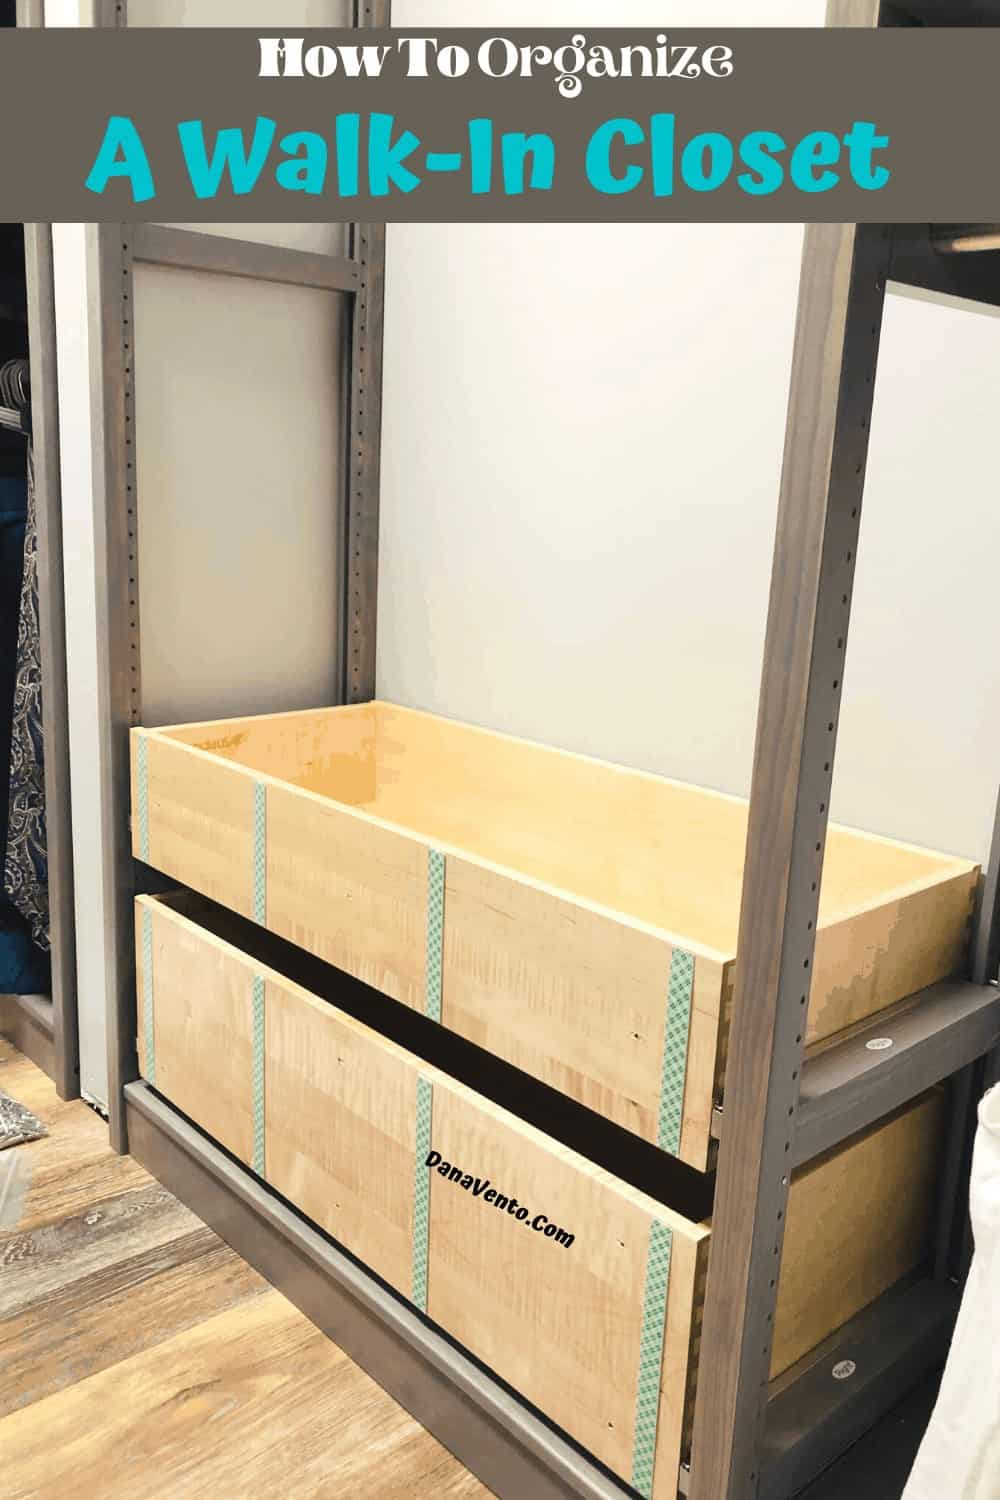 drawers in progress inside the solid wood closet system from Lundia USA